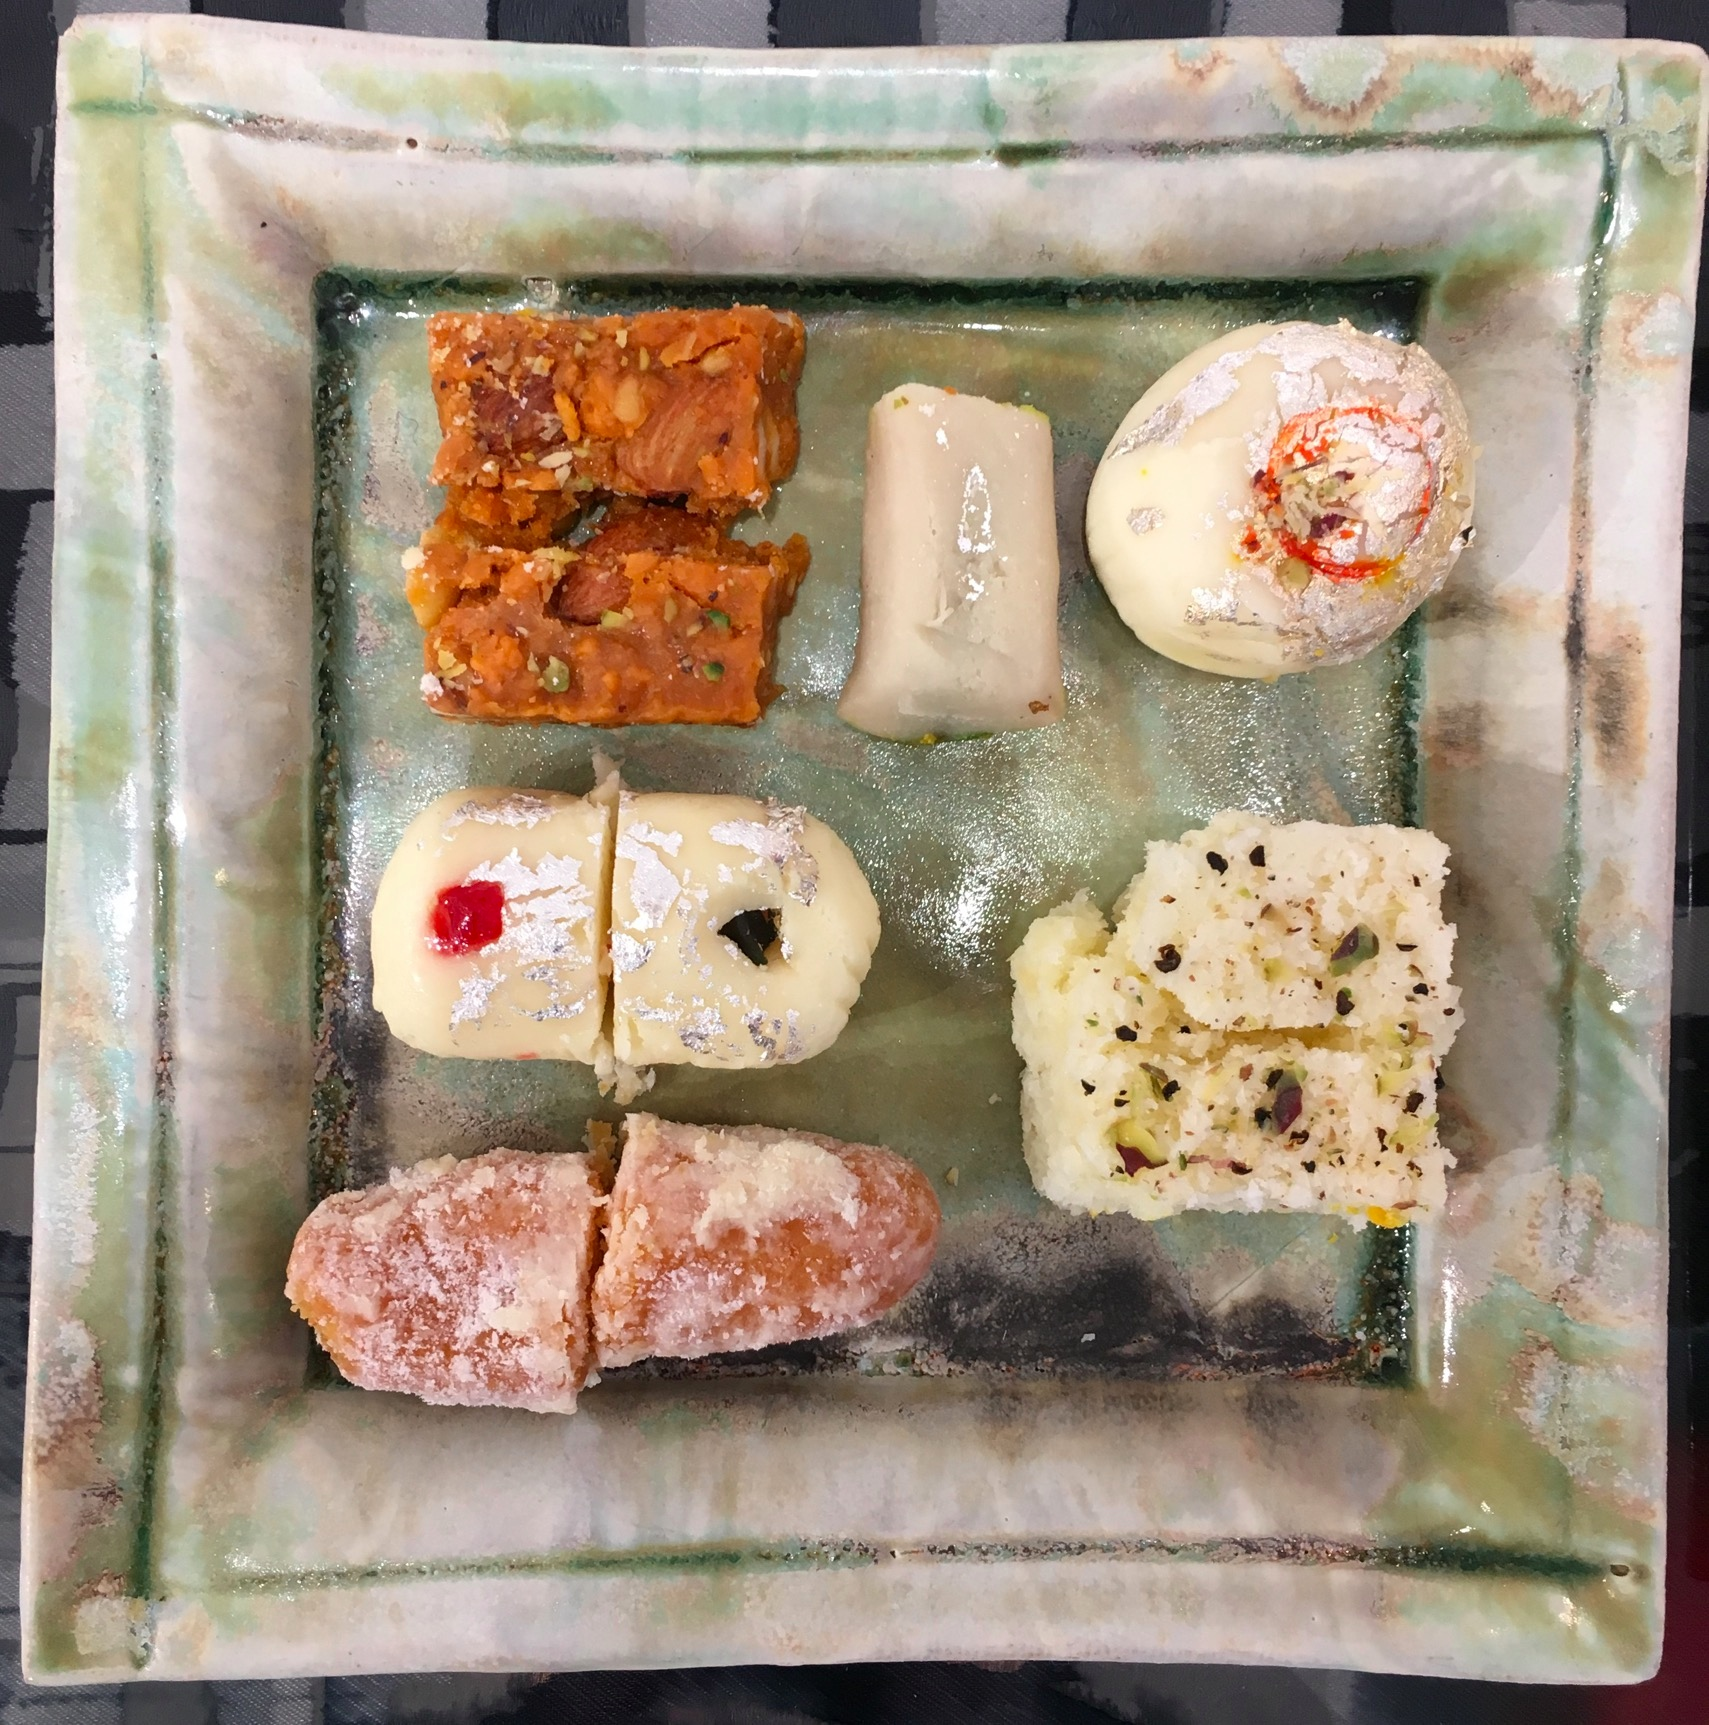 Graham brought these amazing Indian sweets from the East End of London to the private view!